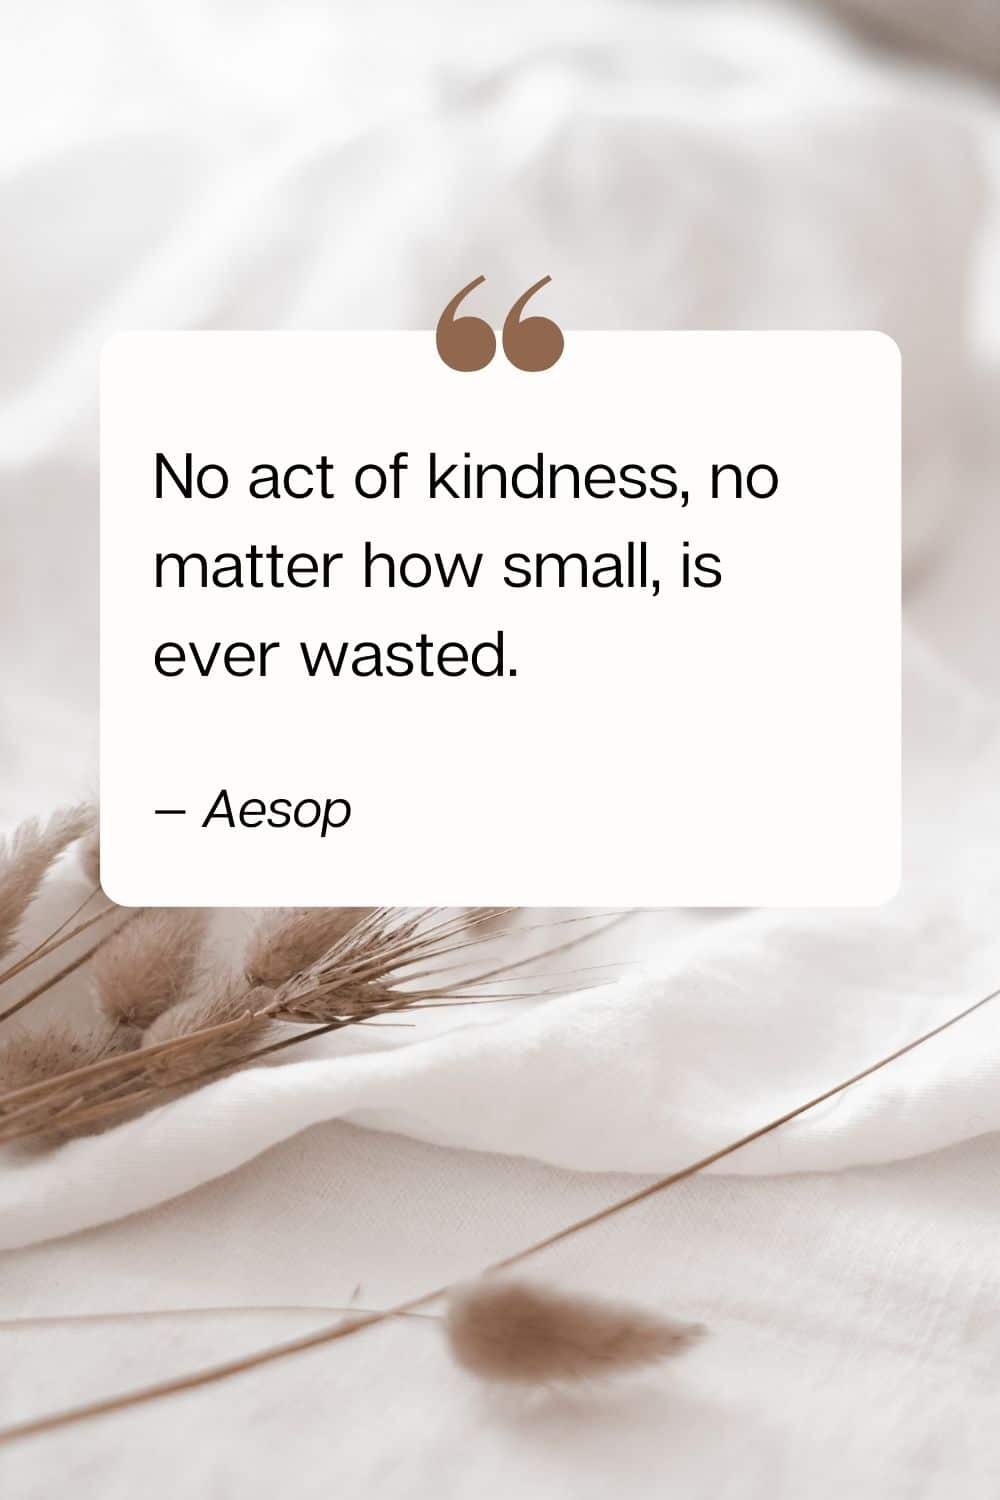 quote - No act of kindness, no matter how small, is ever wasted. — Aesop